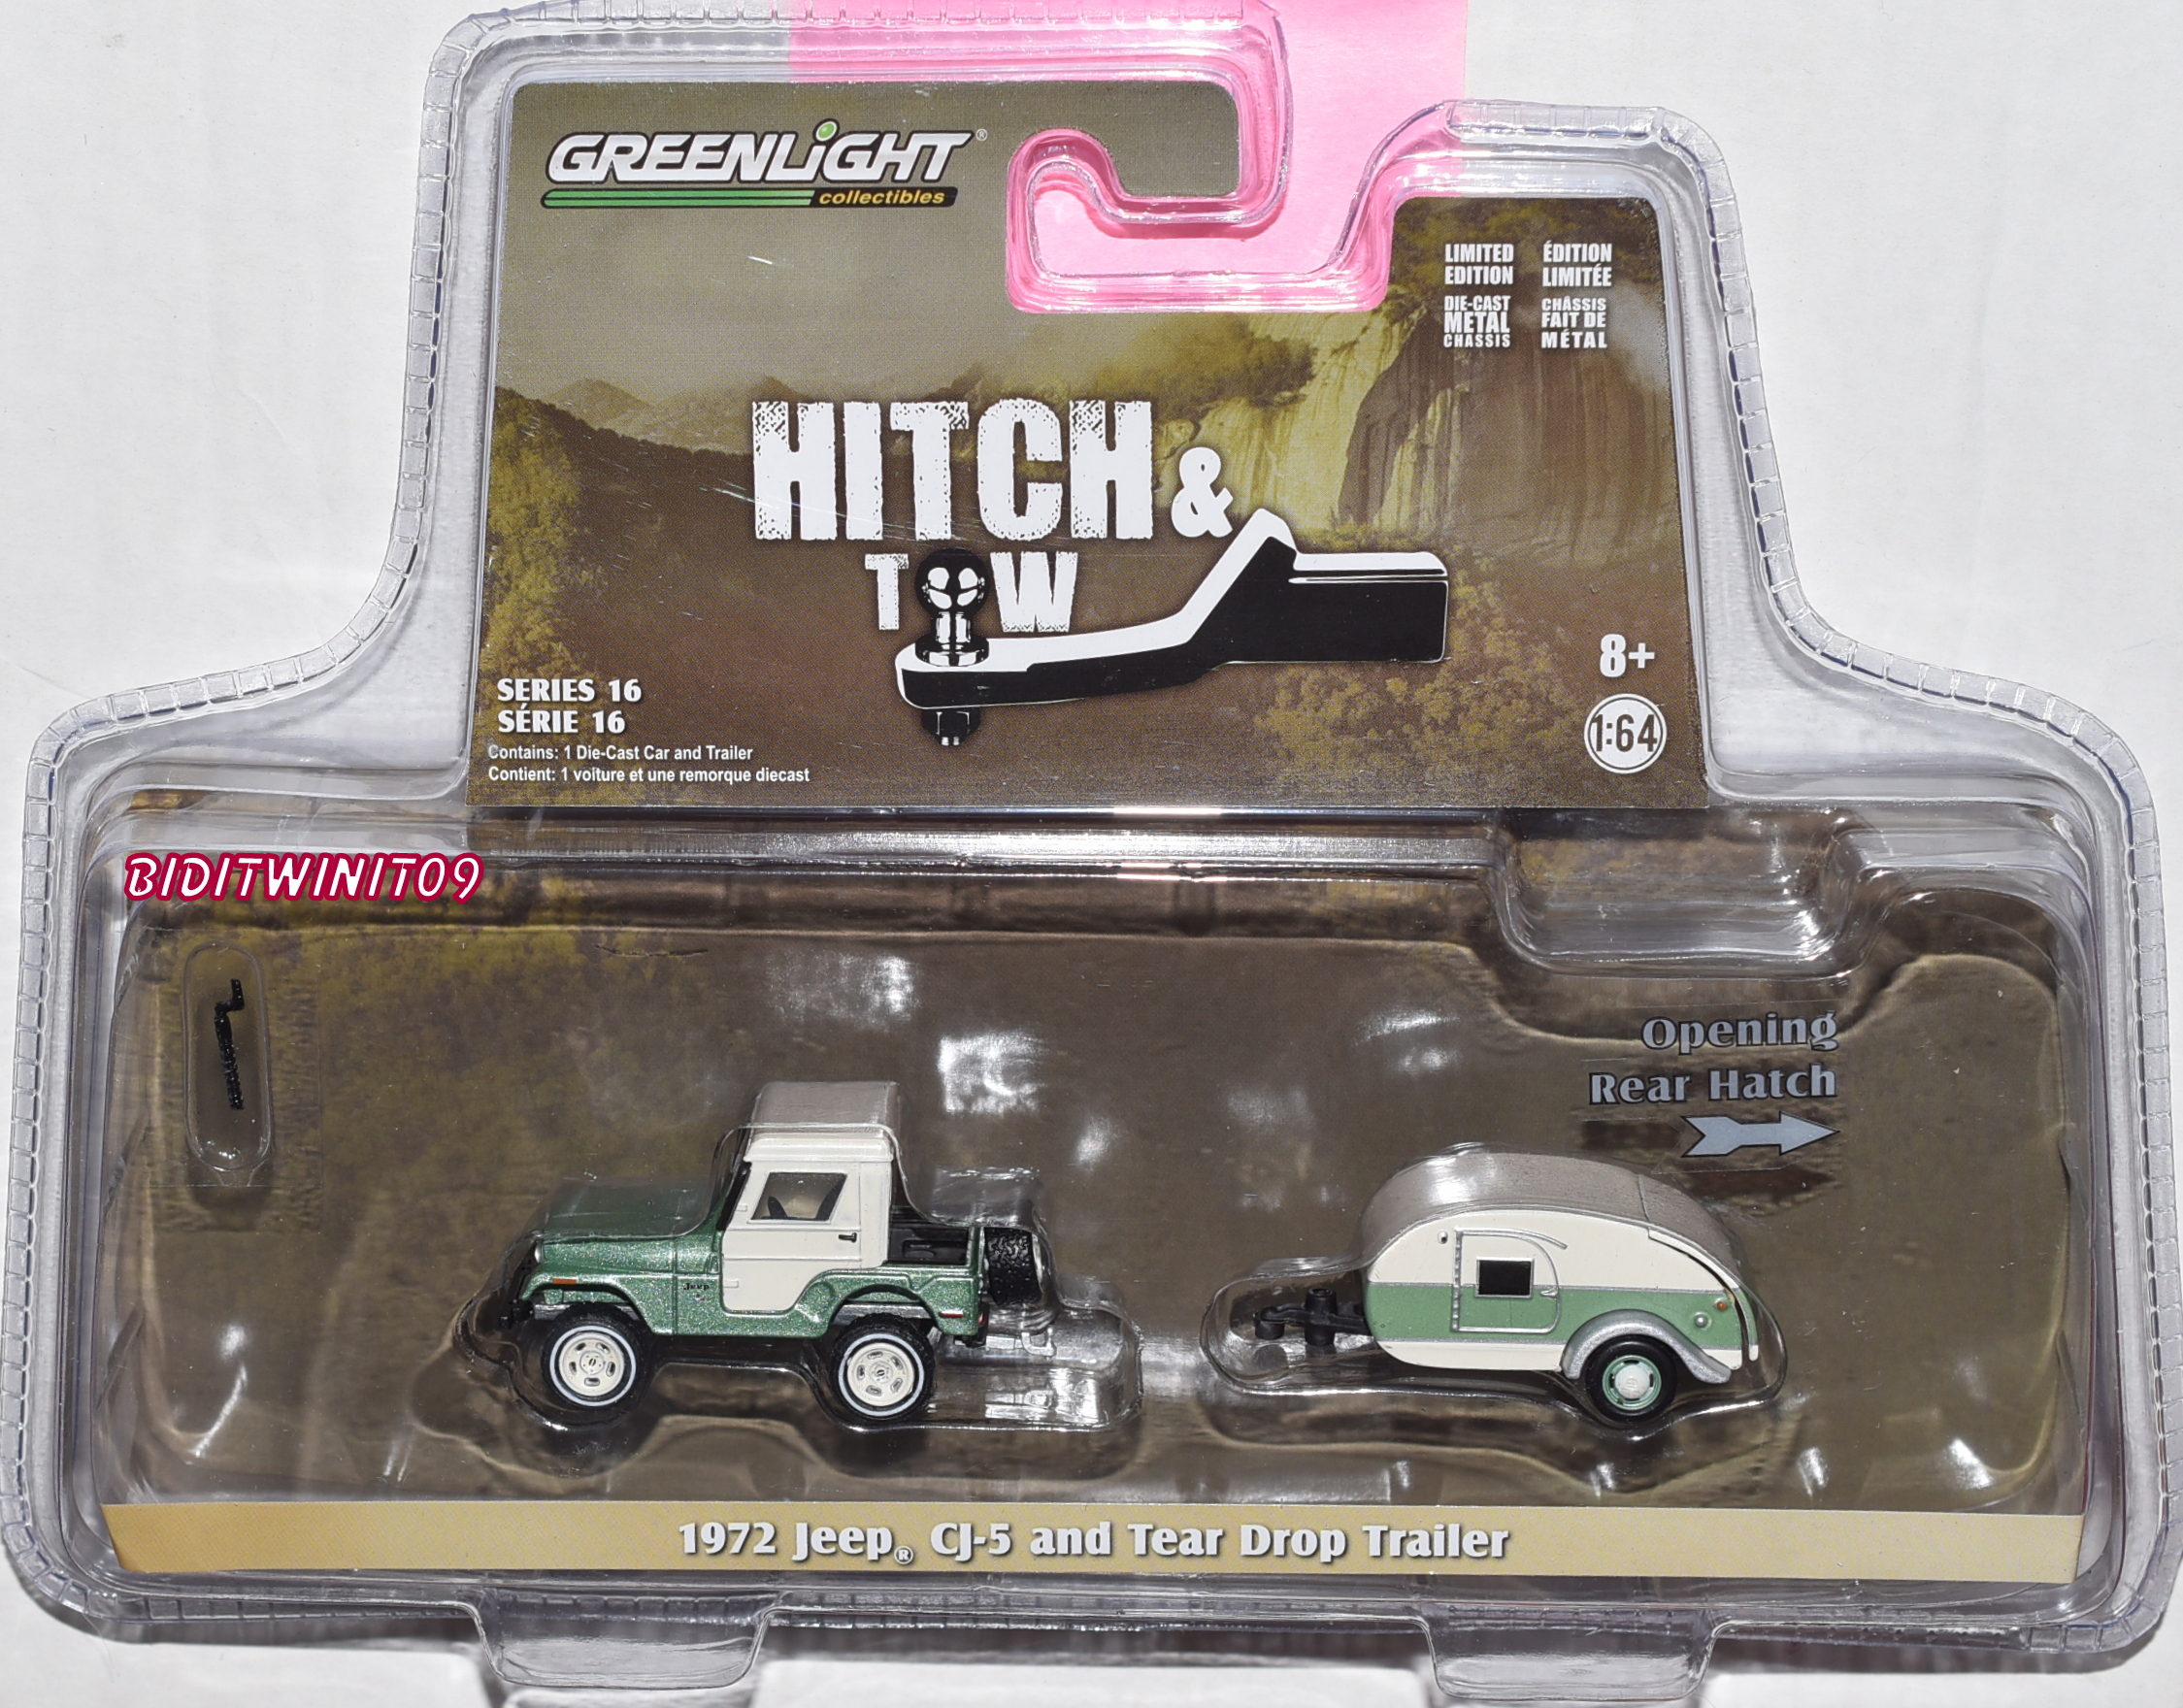 GREENLIGHT HITCH & TOW 1972 JEEP CJ-5 HALF-CAB AND TEARD ROP TRAILER E+